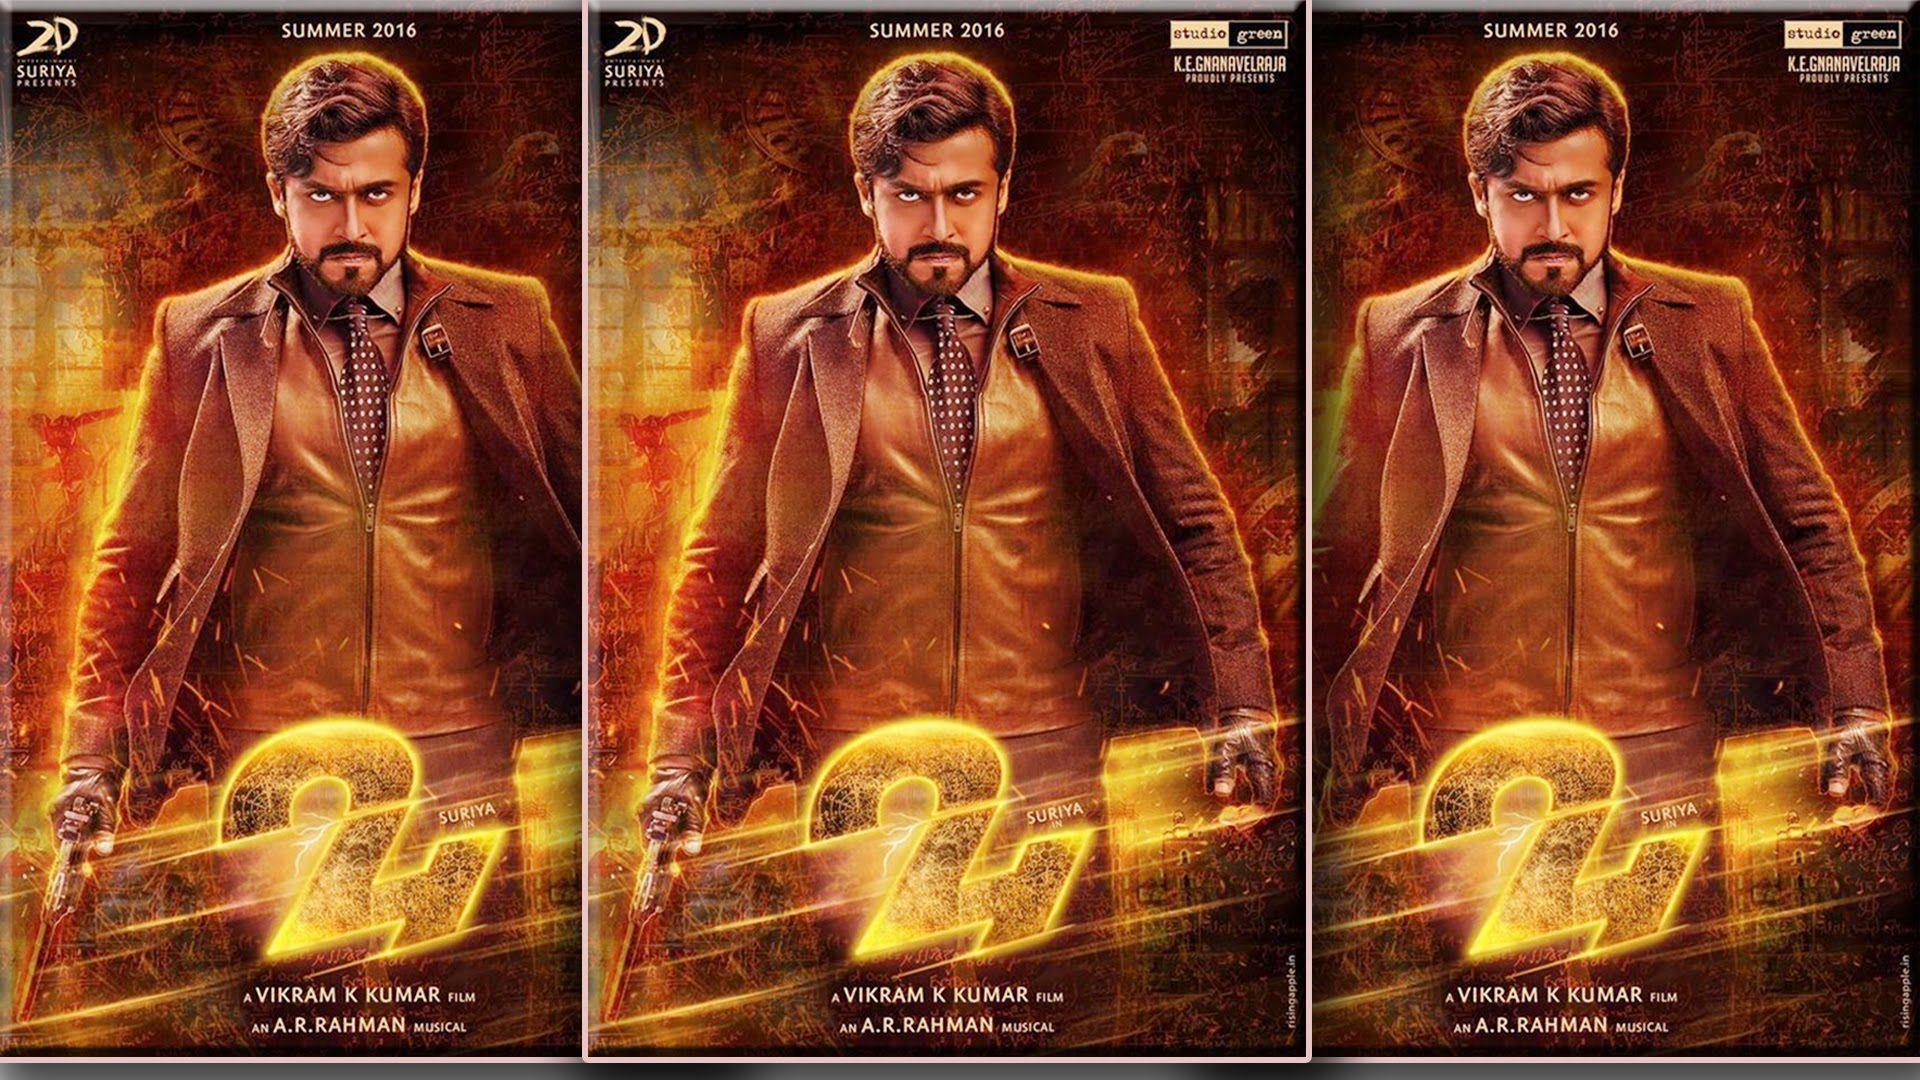 Surya hd wallpapers 2016 wallpaper cave surya 24 first look posters exclusive video hd heres the first altavistaventures Gallery